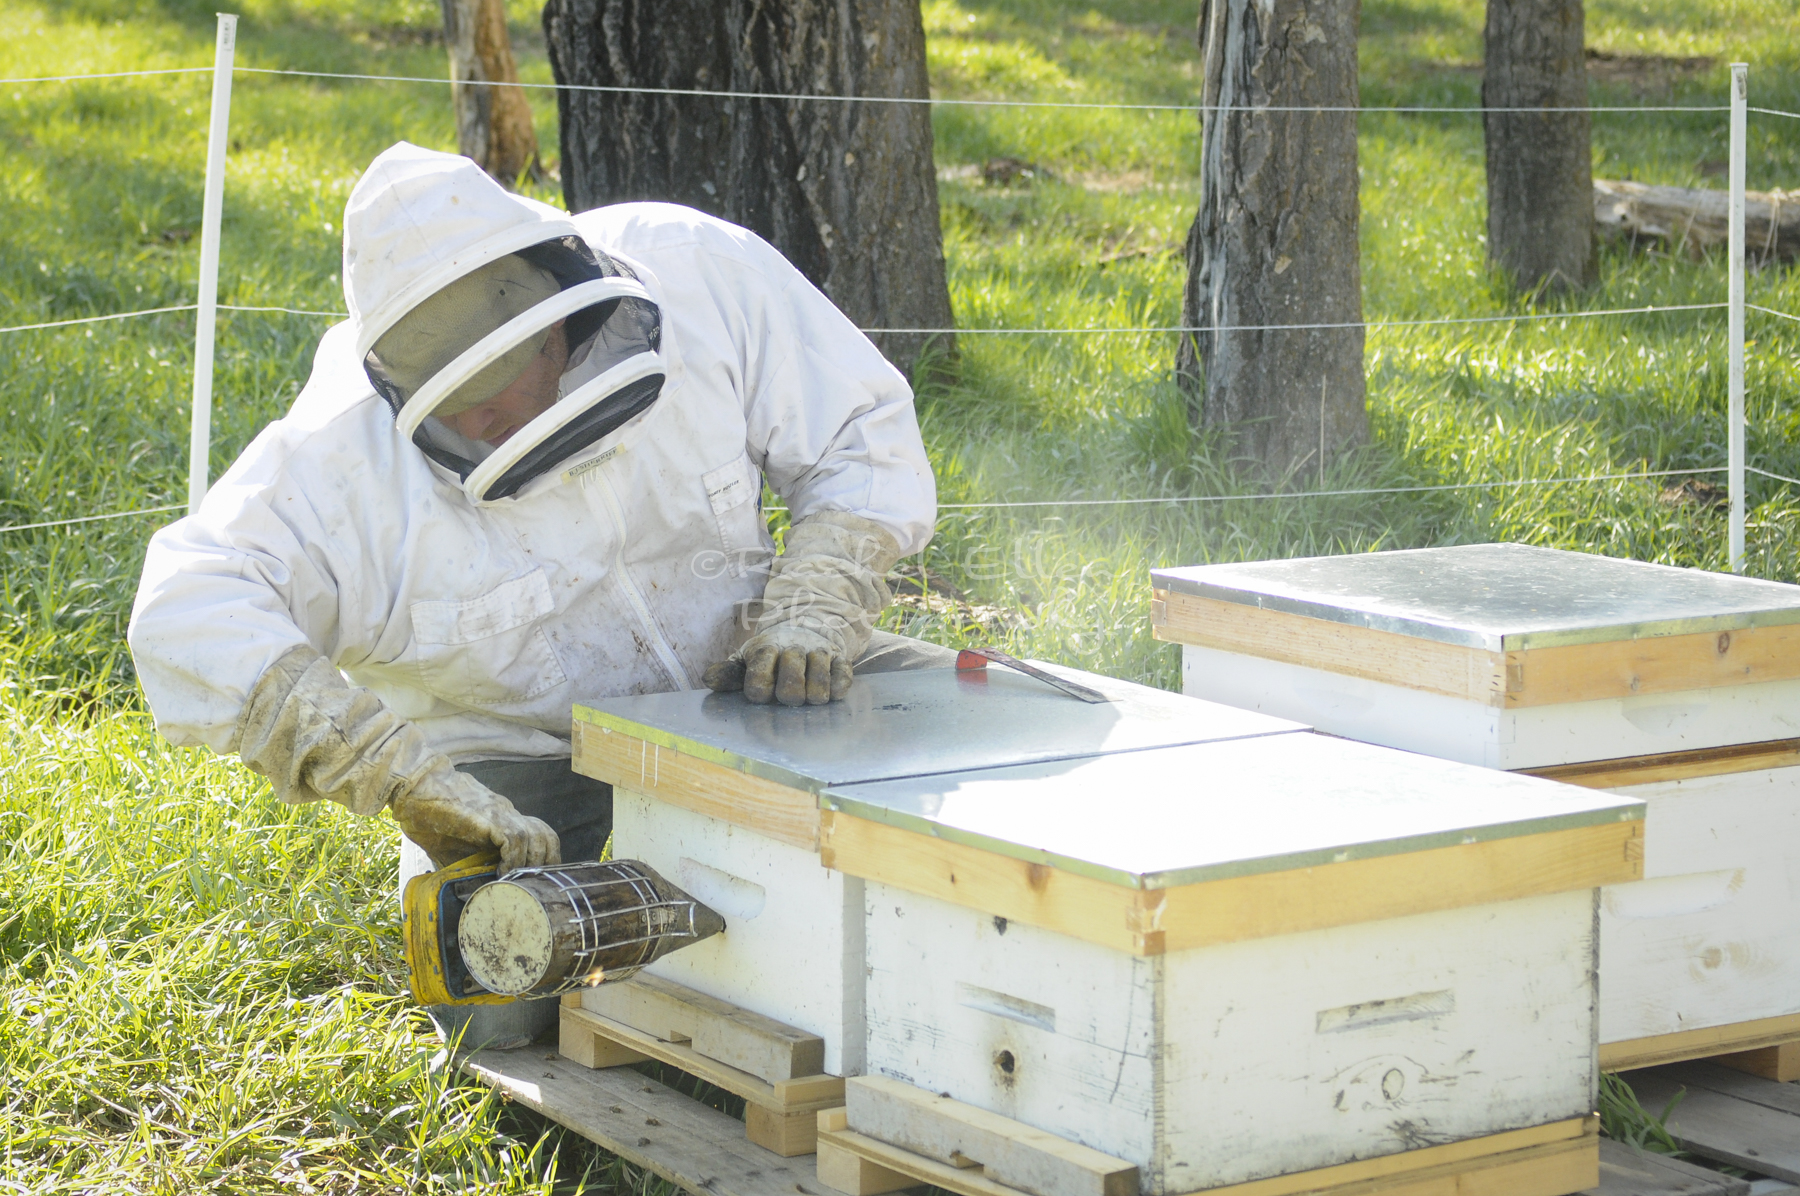 beekeeper in the MD of Foothills